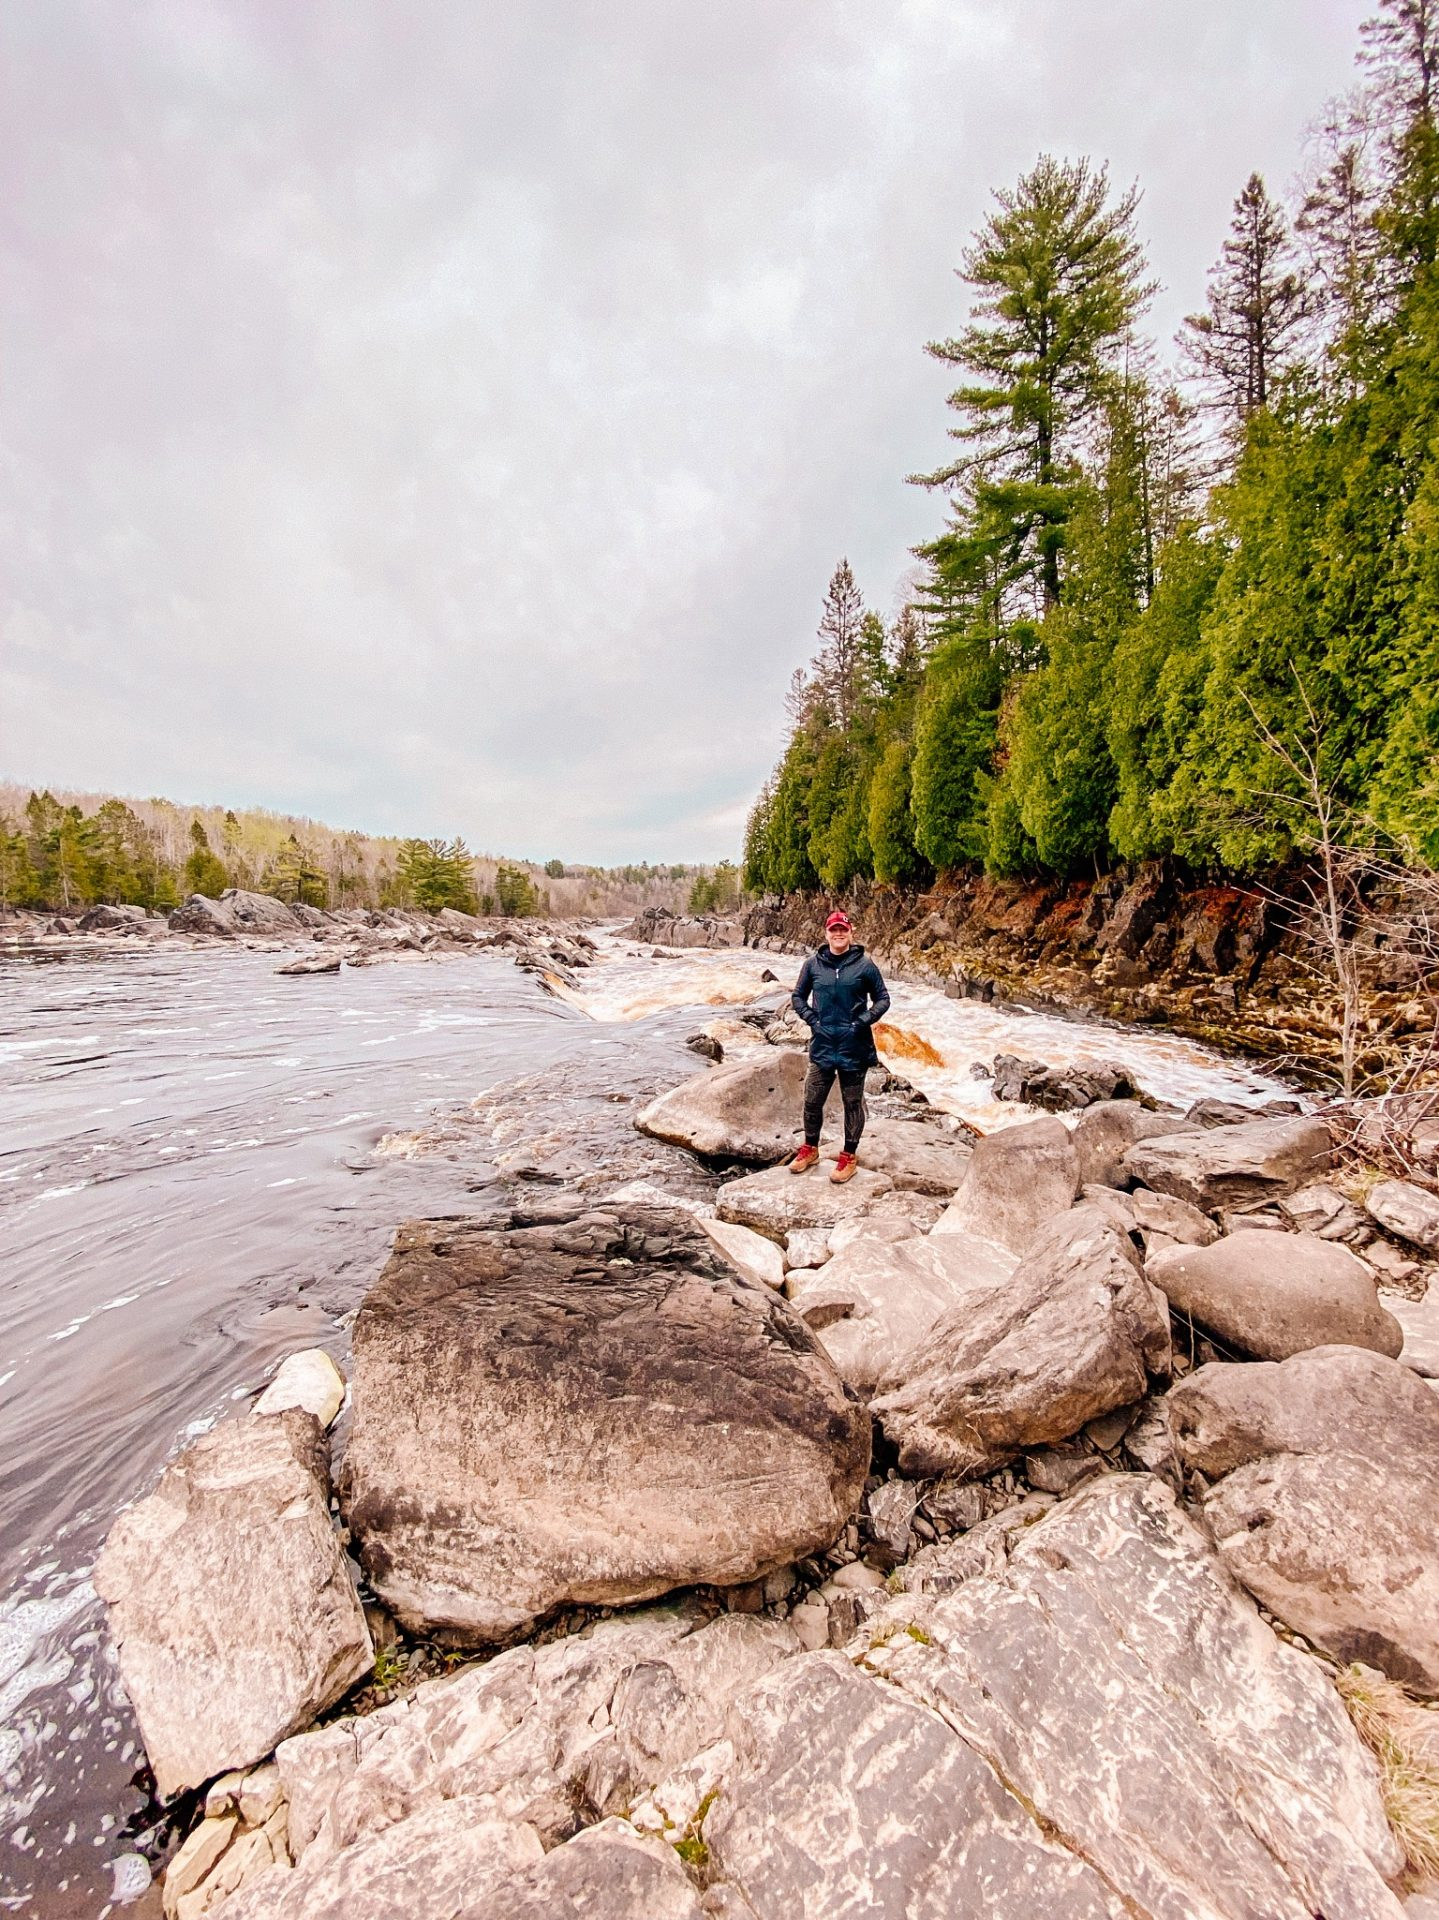 Woman standing on rocks near the St. Louis River at Jay Cooke State Park in Minnesota near Duluth while hiking. rugged river edge and green evergreen trees tower behind her.